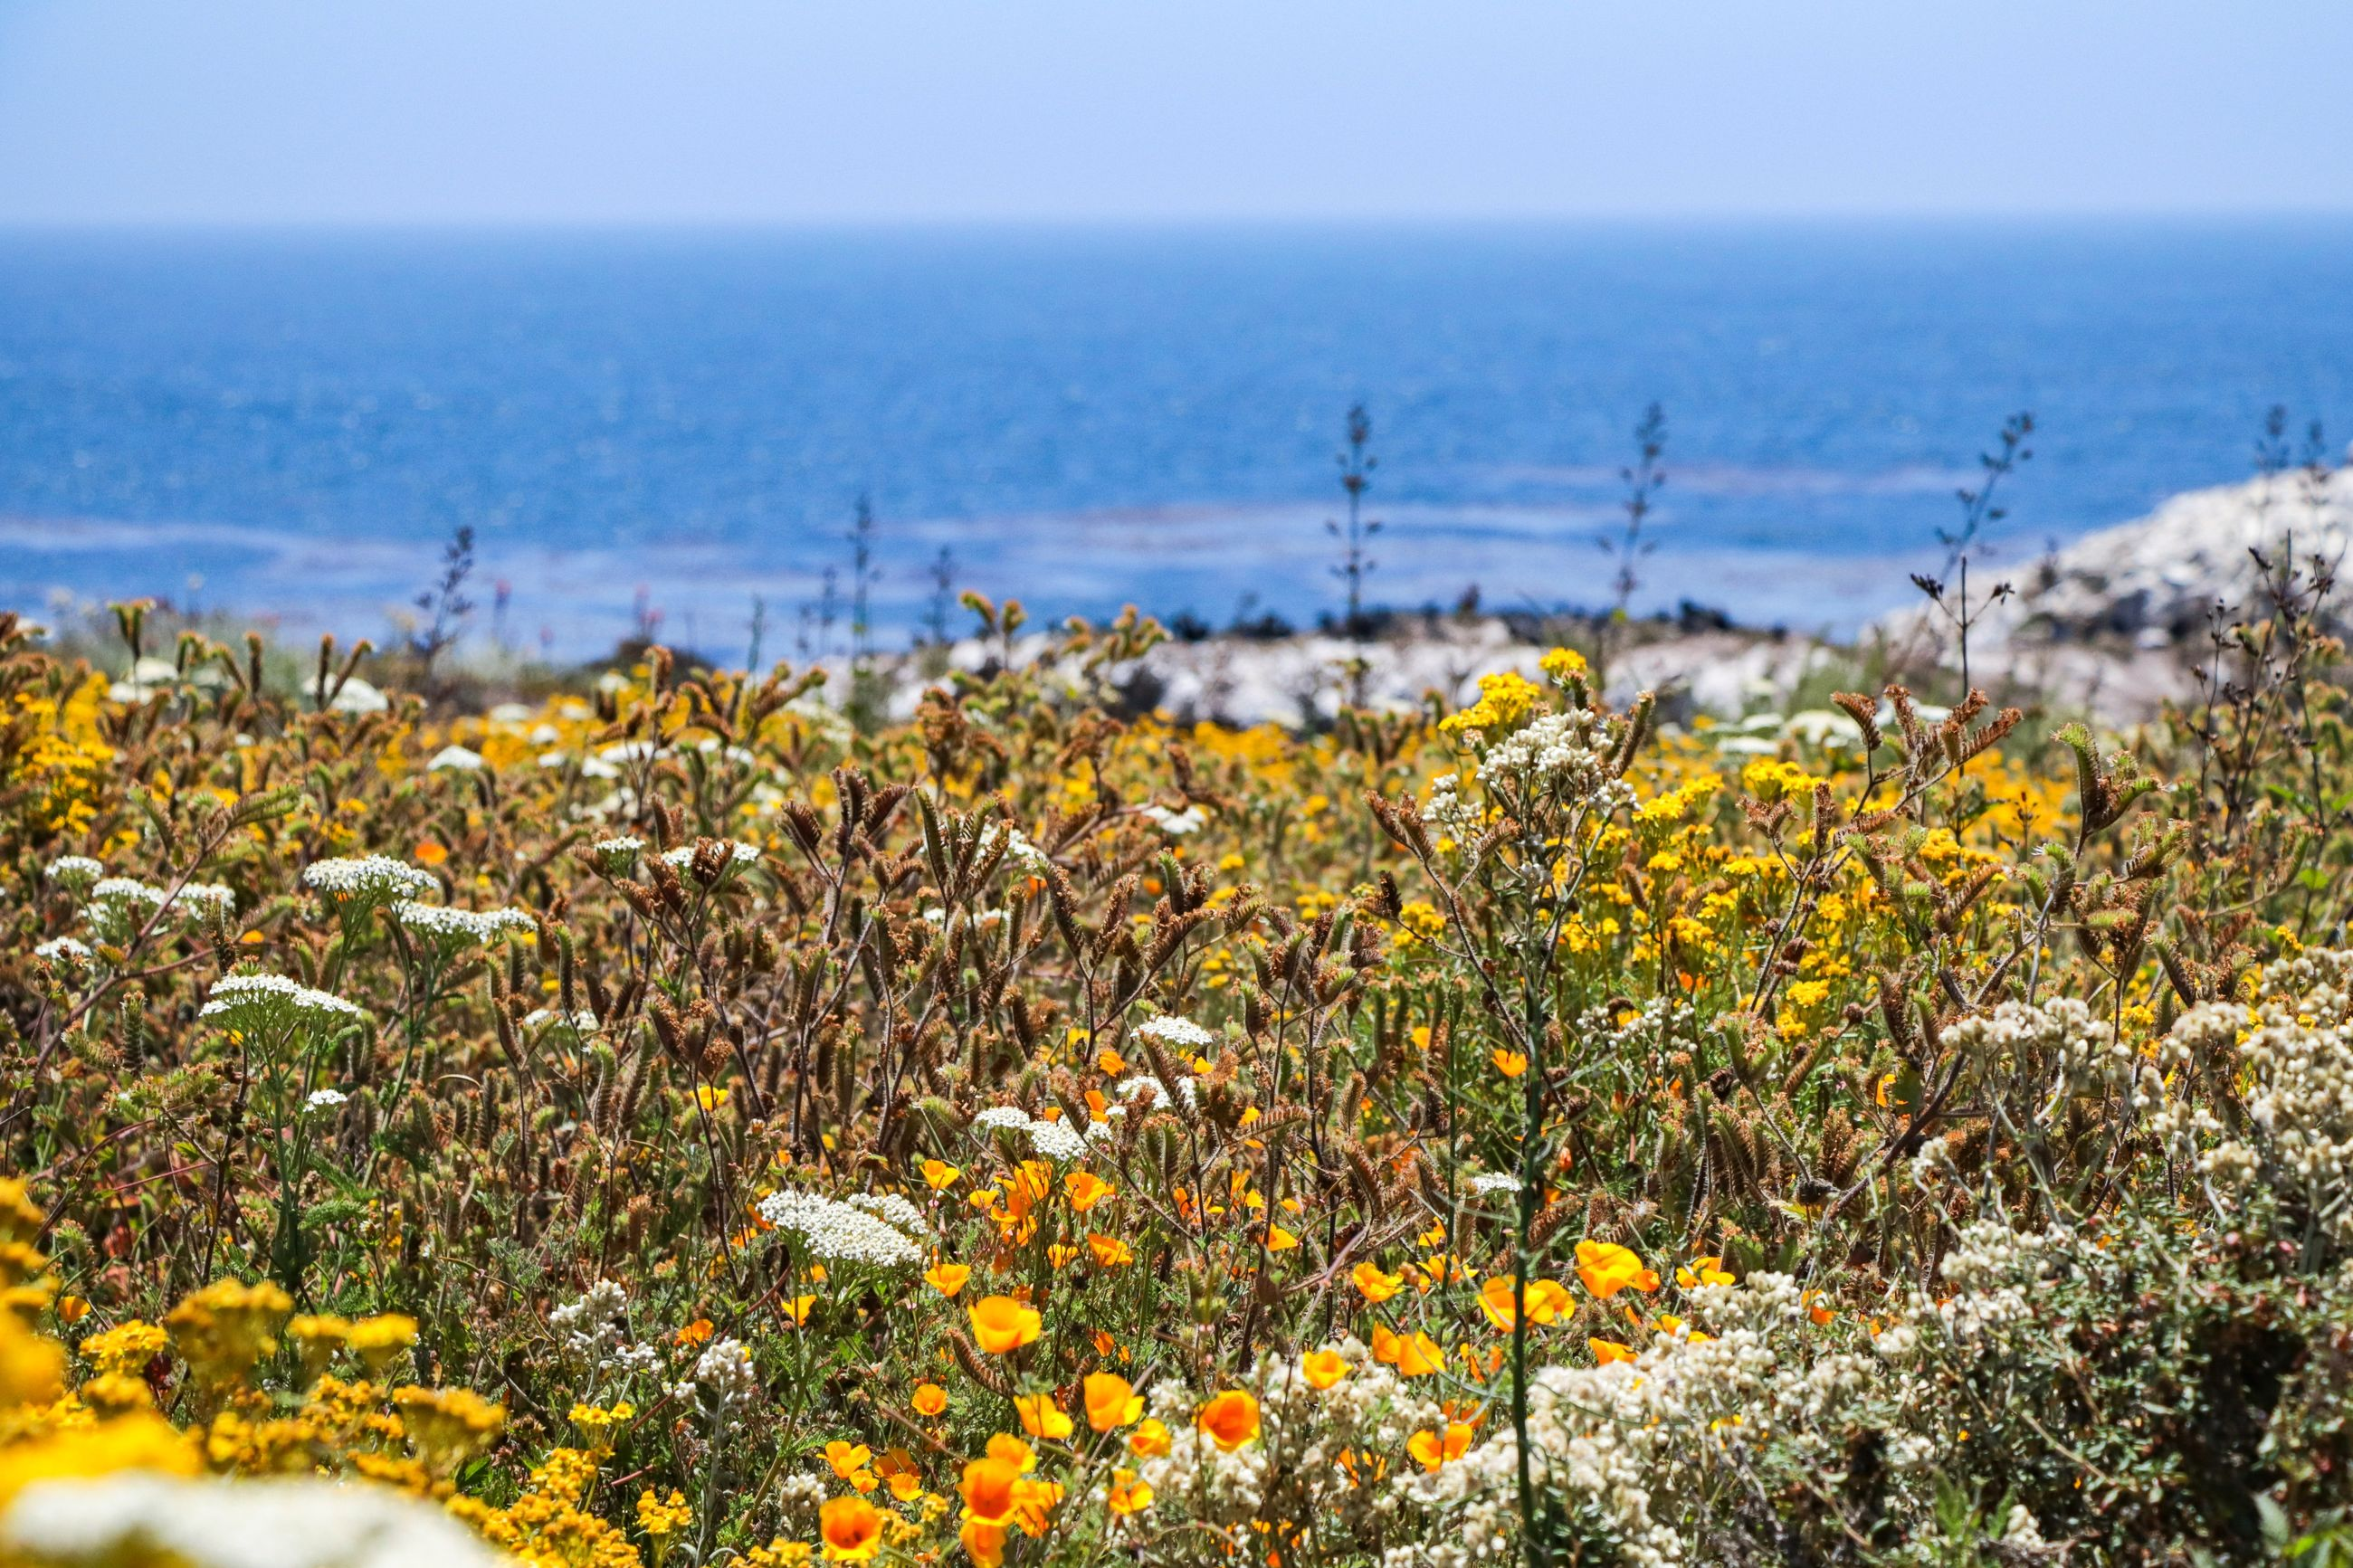 SCENIC VIEW OF SEA AND YELLOW FLOWERS